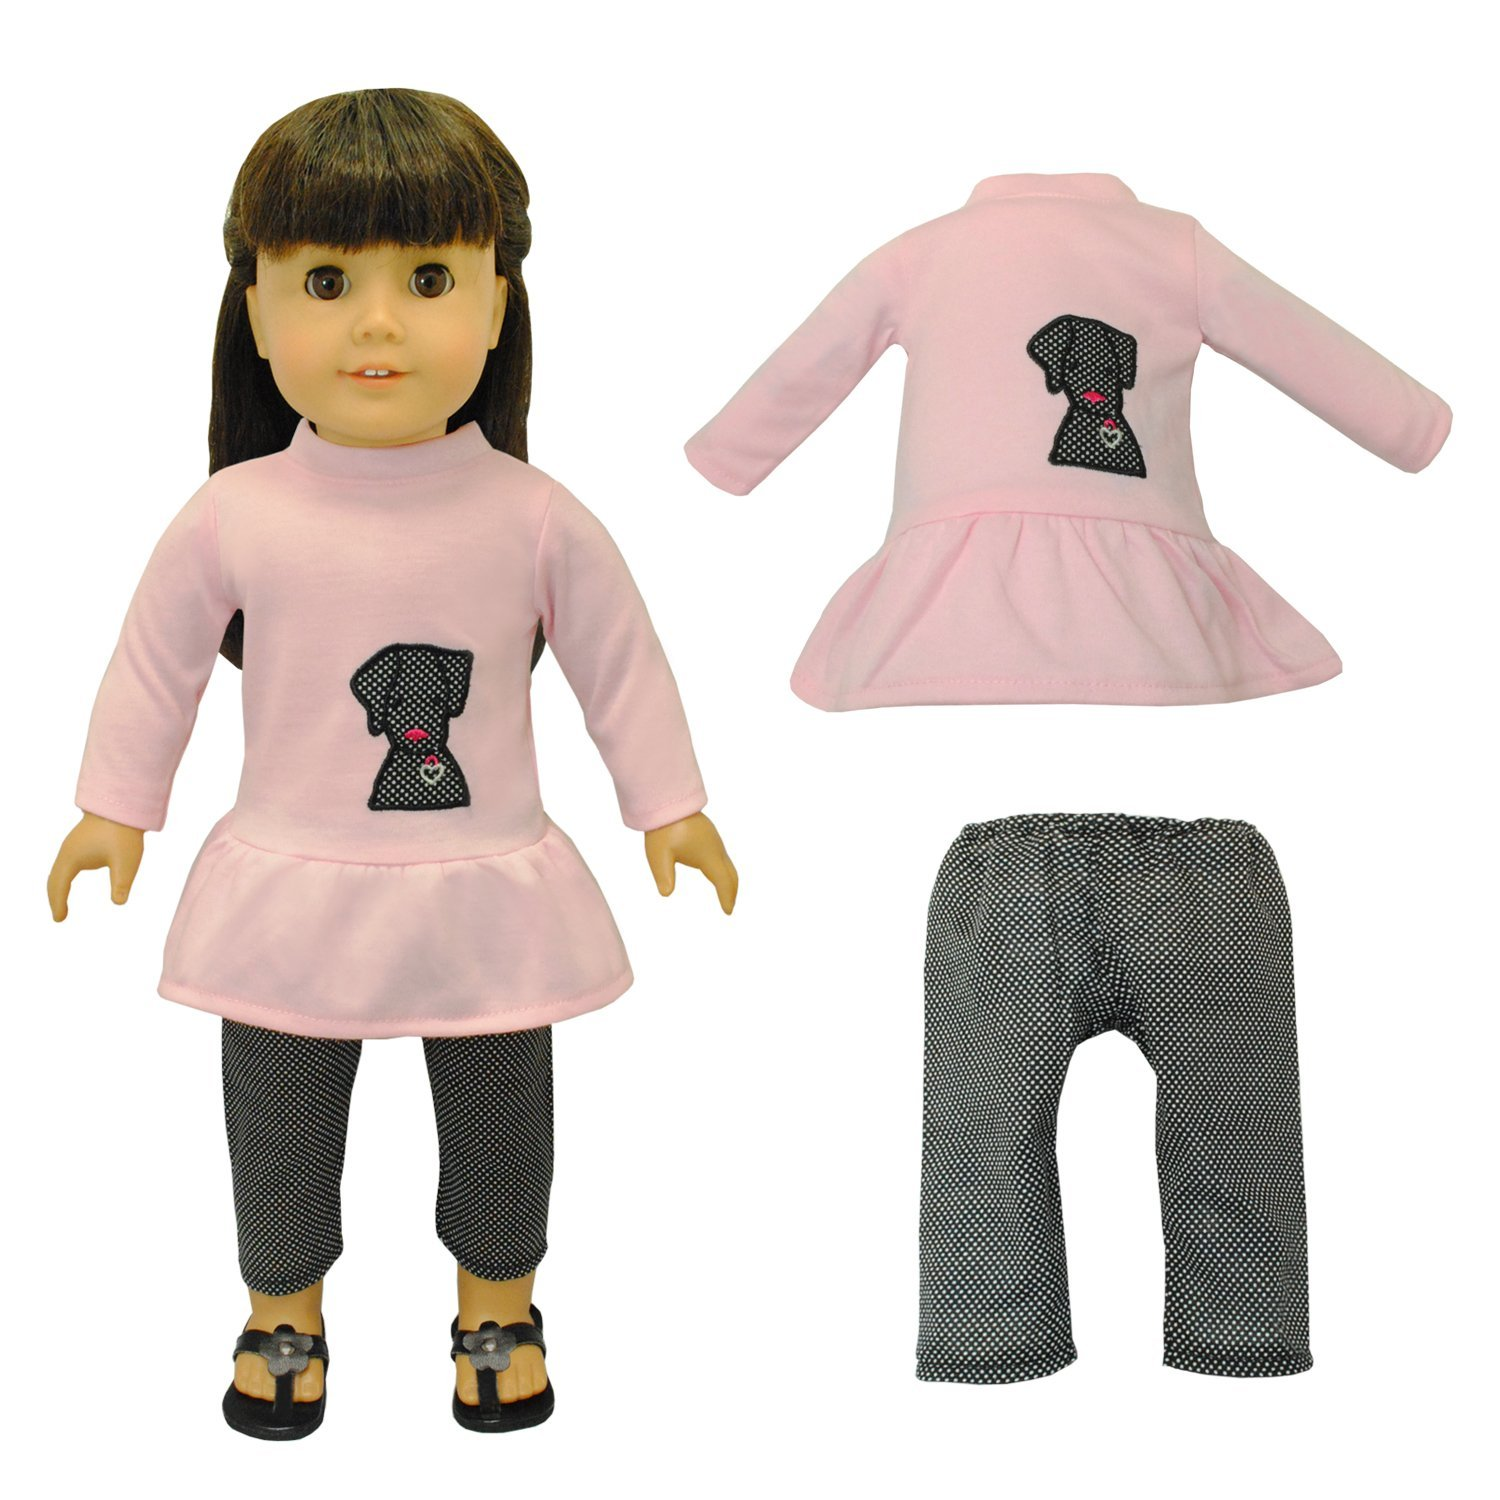 Doll Clothes Cute Dog & Capris Outfit Fits American Girl & Other 18 Inch Dolls by Pink Butterfly Closet